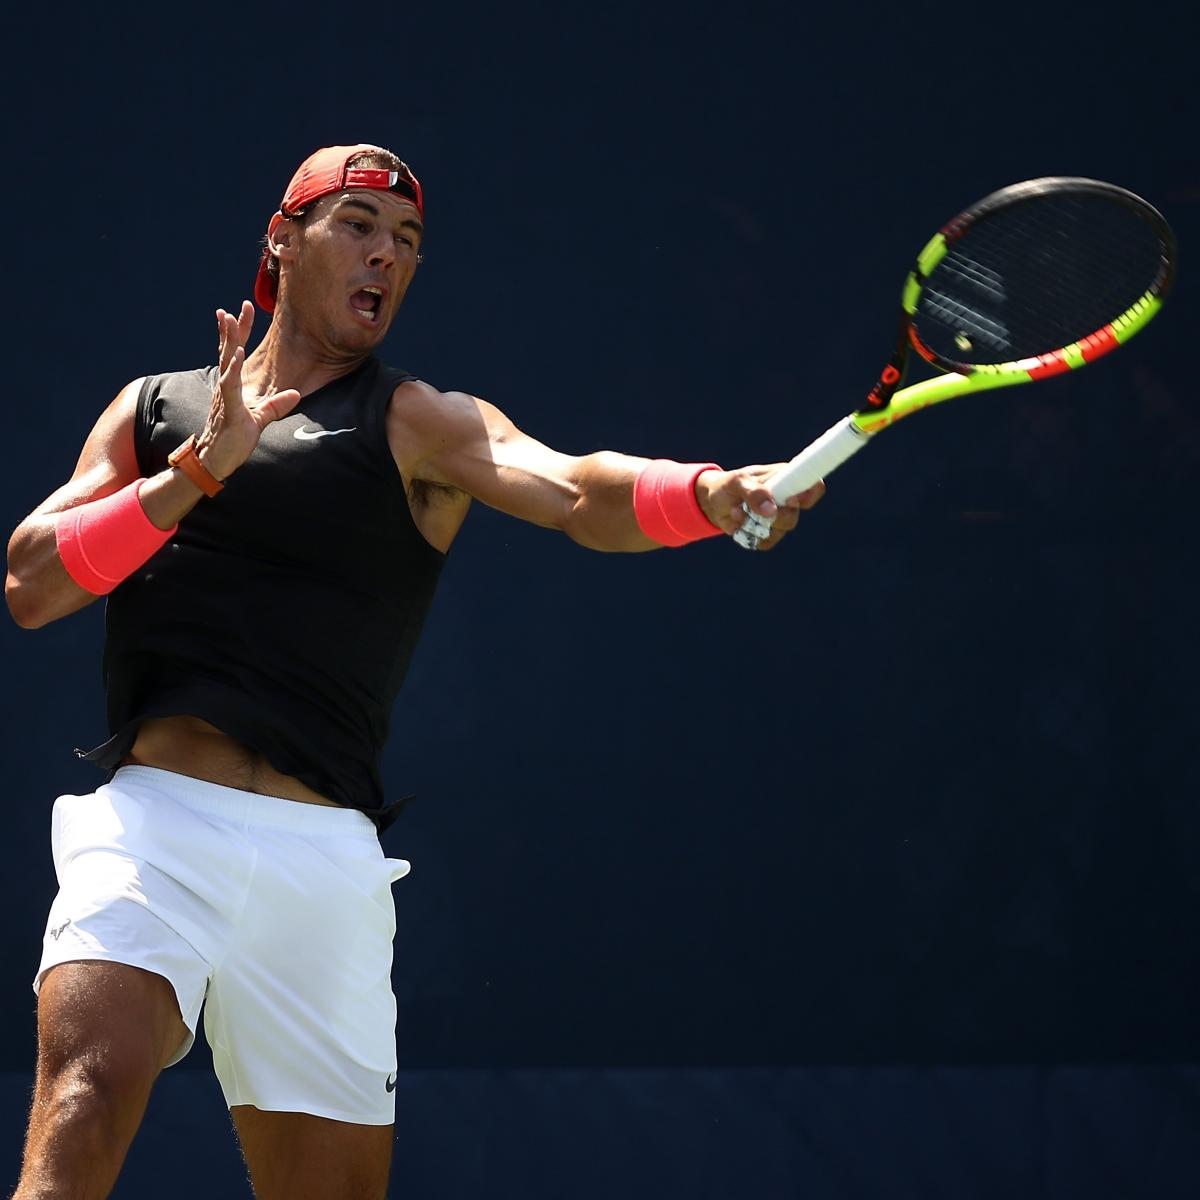 us open tennis 2018: replay tv schedule, live stream for monday's